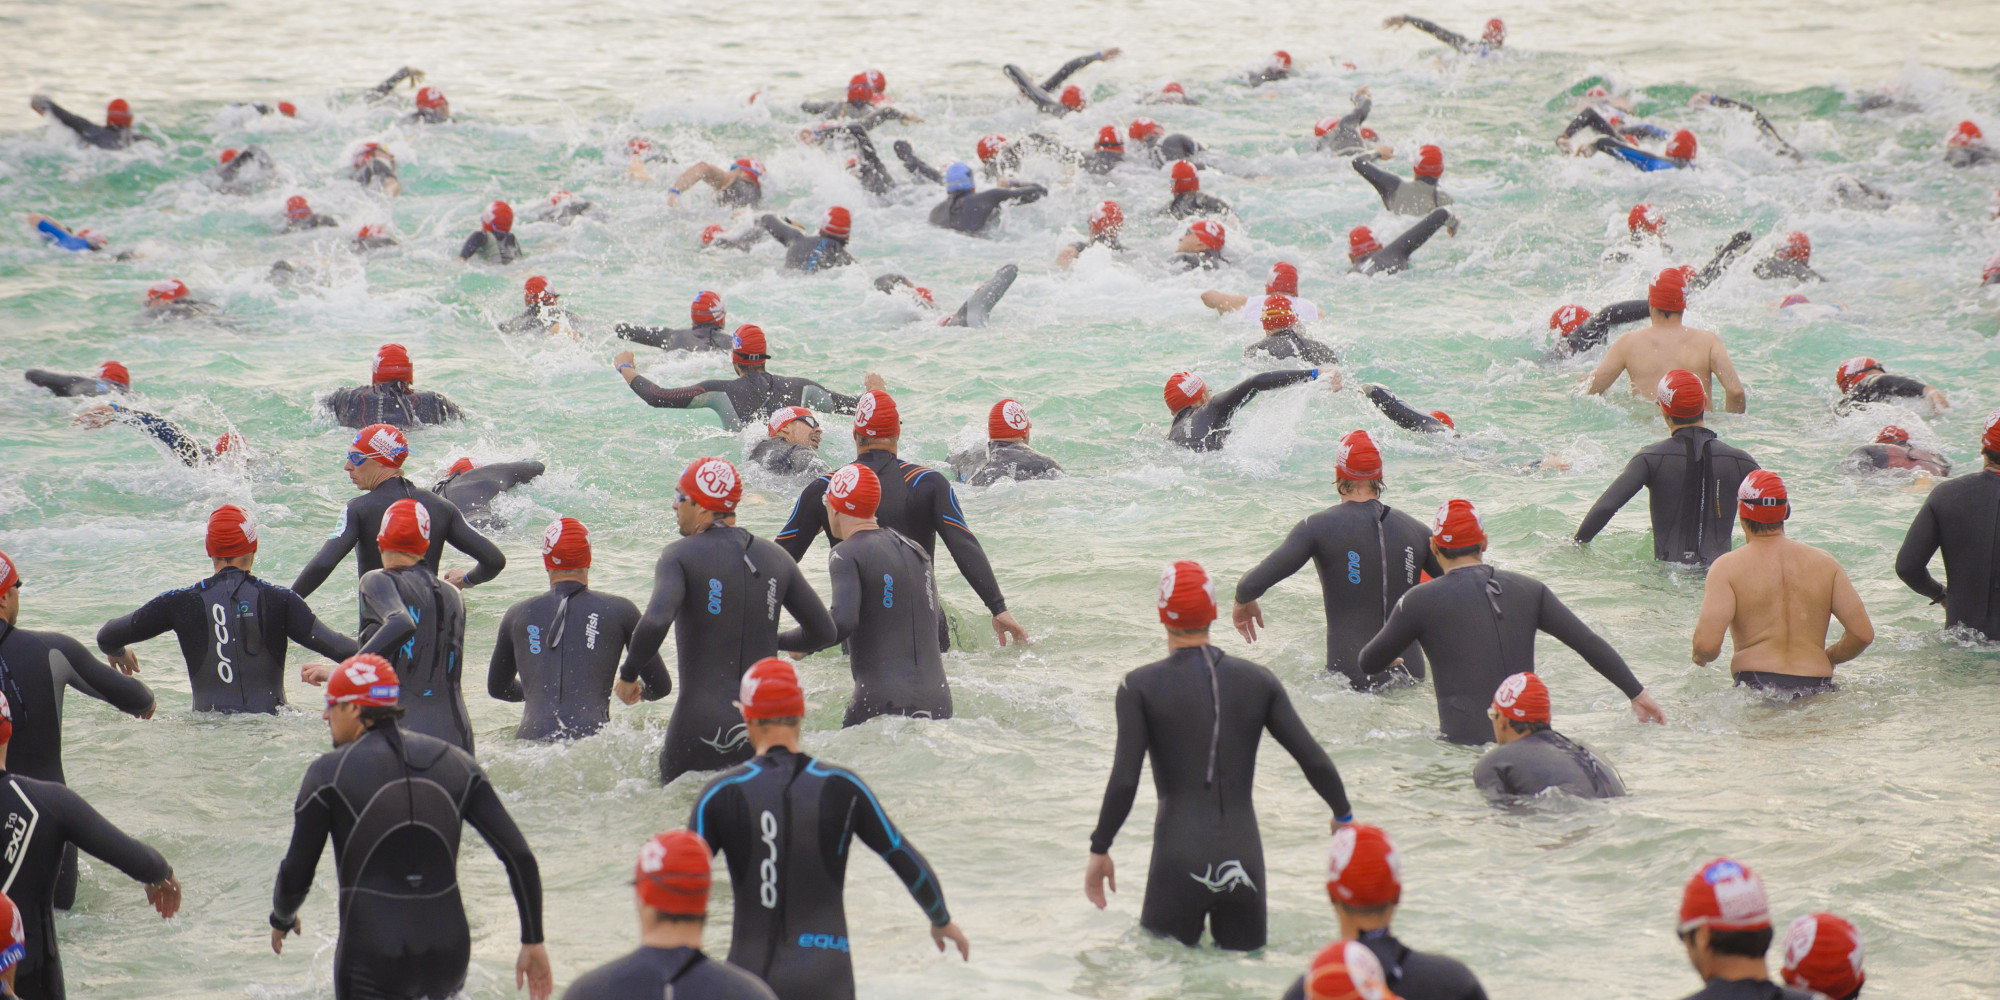 How long does it take to train for a Triathlon?